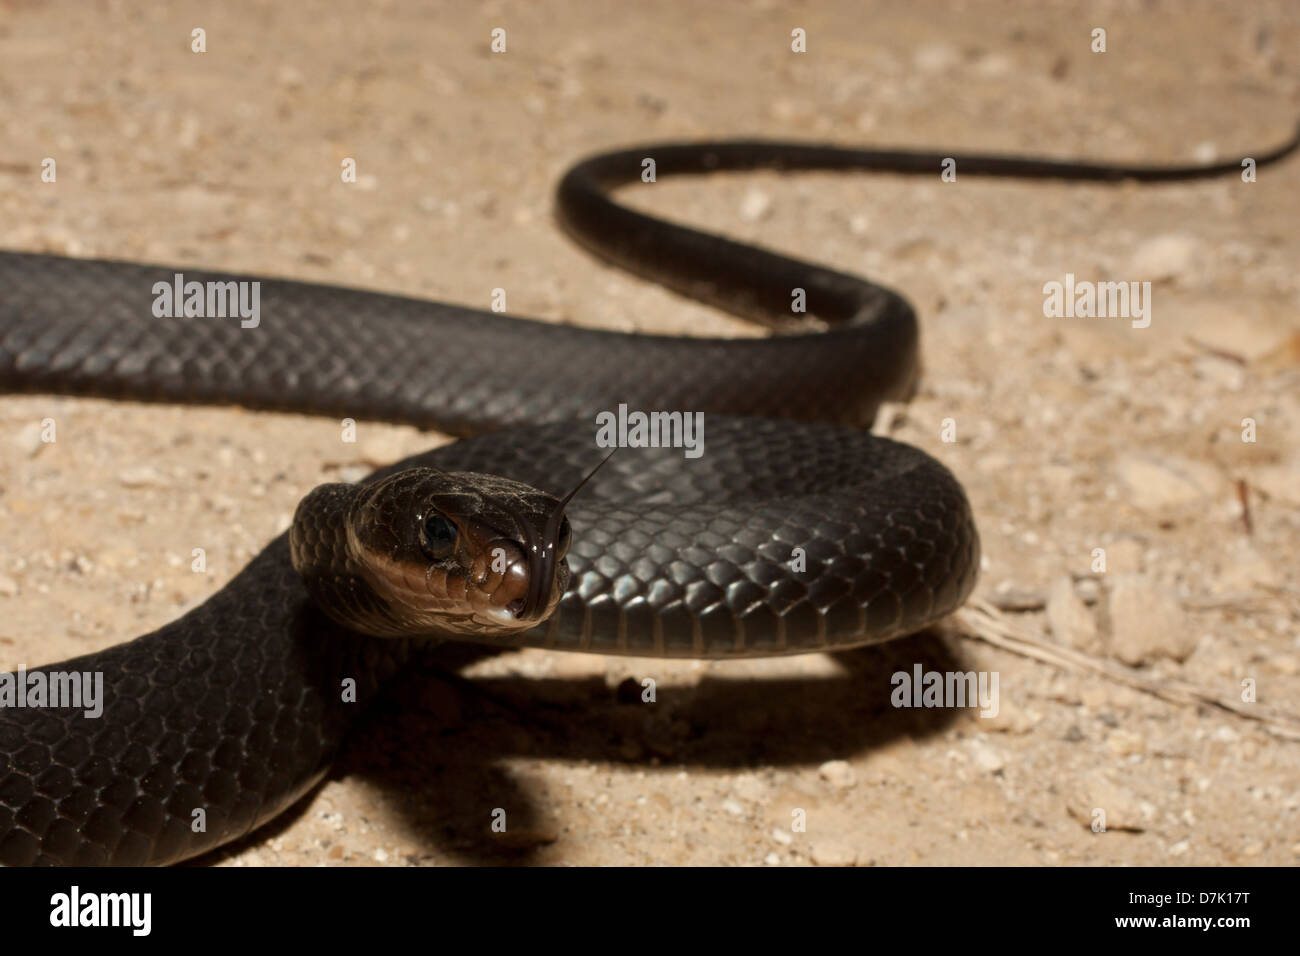 A brownchin racer smelling the air with its forked tongue - Stock Image